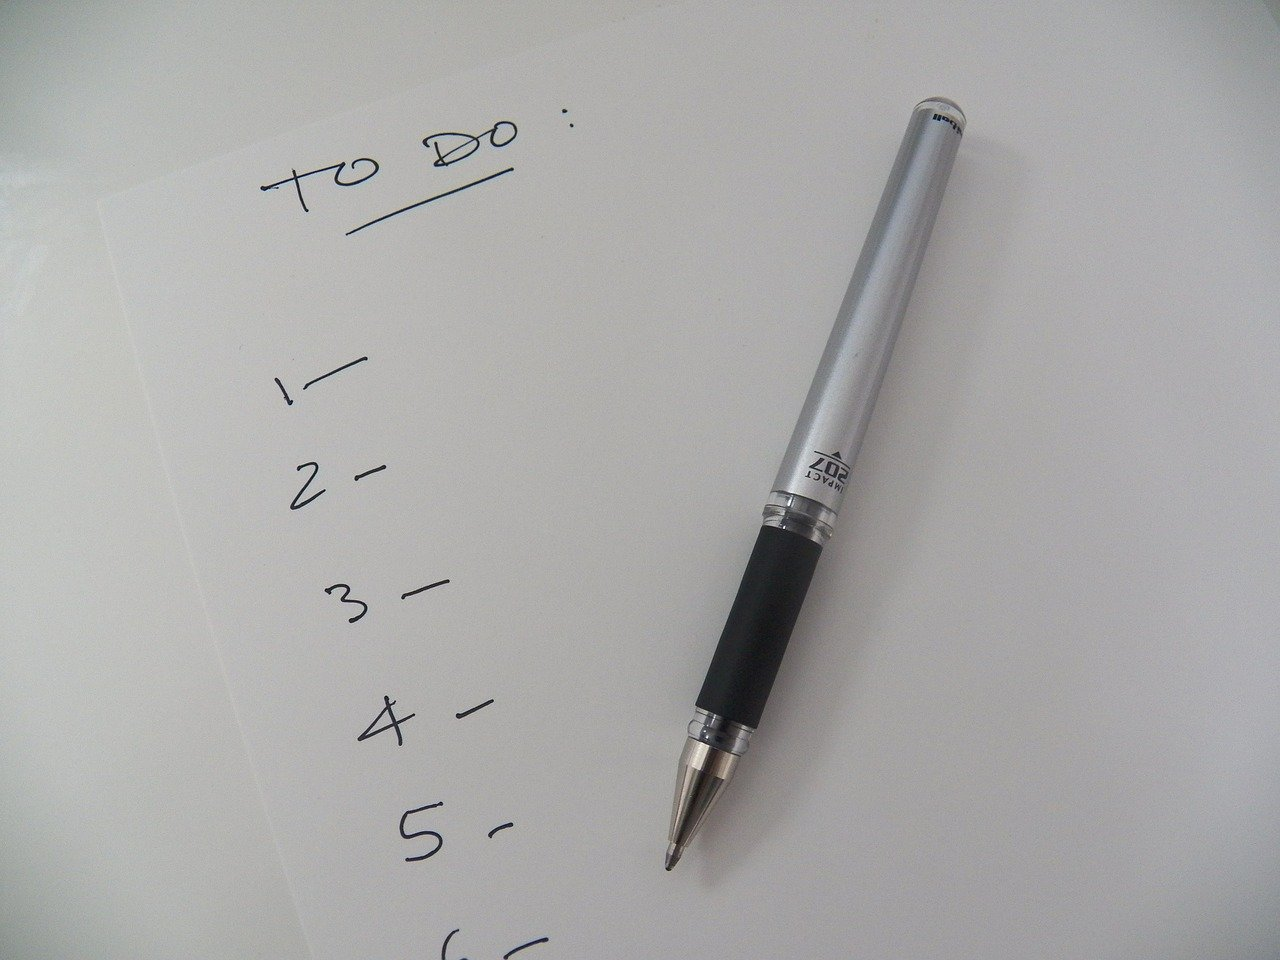 numbrered to-do list on a piece of white paper